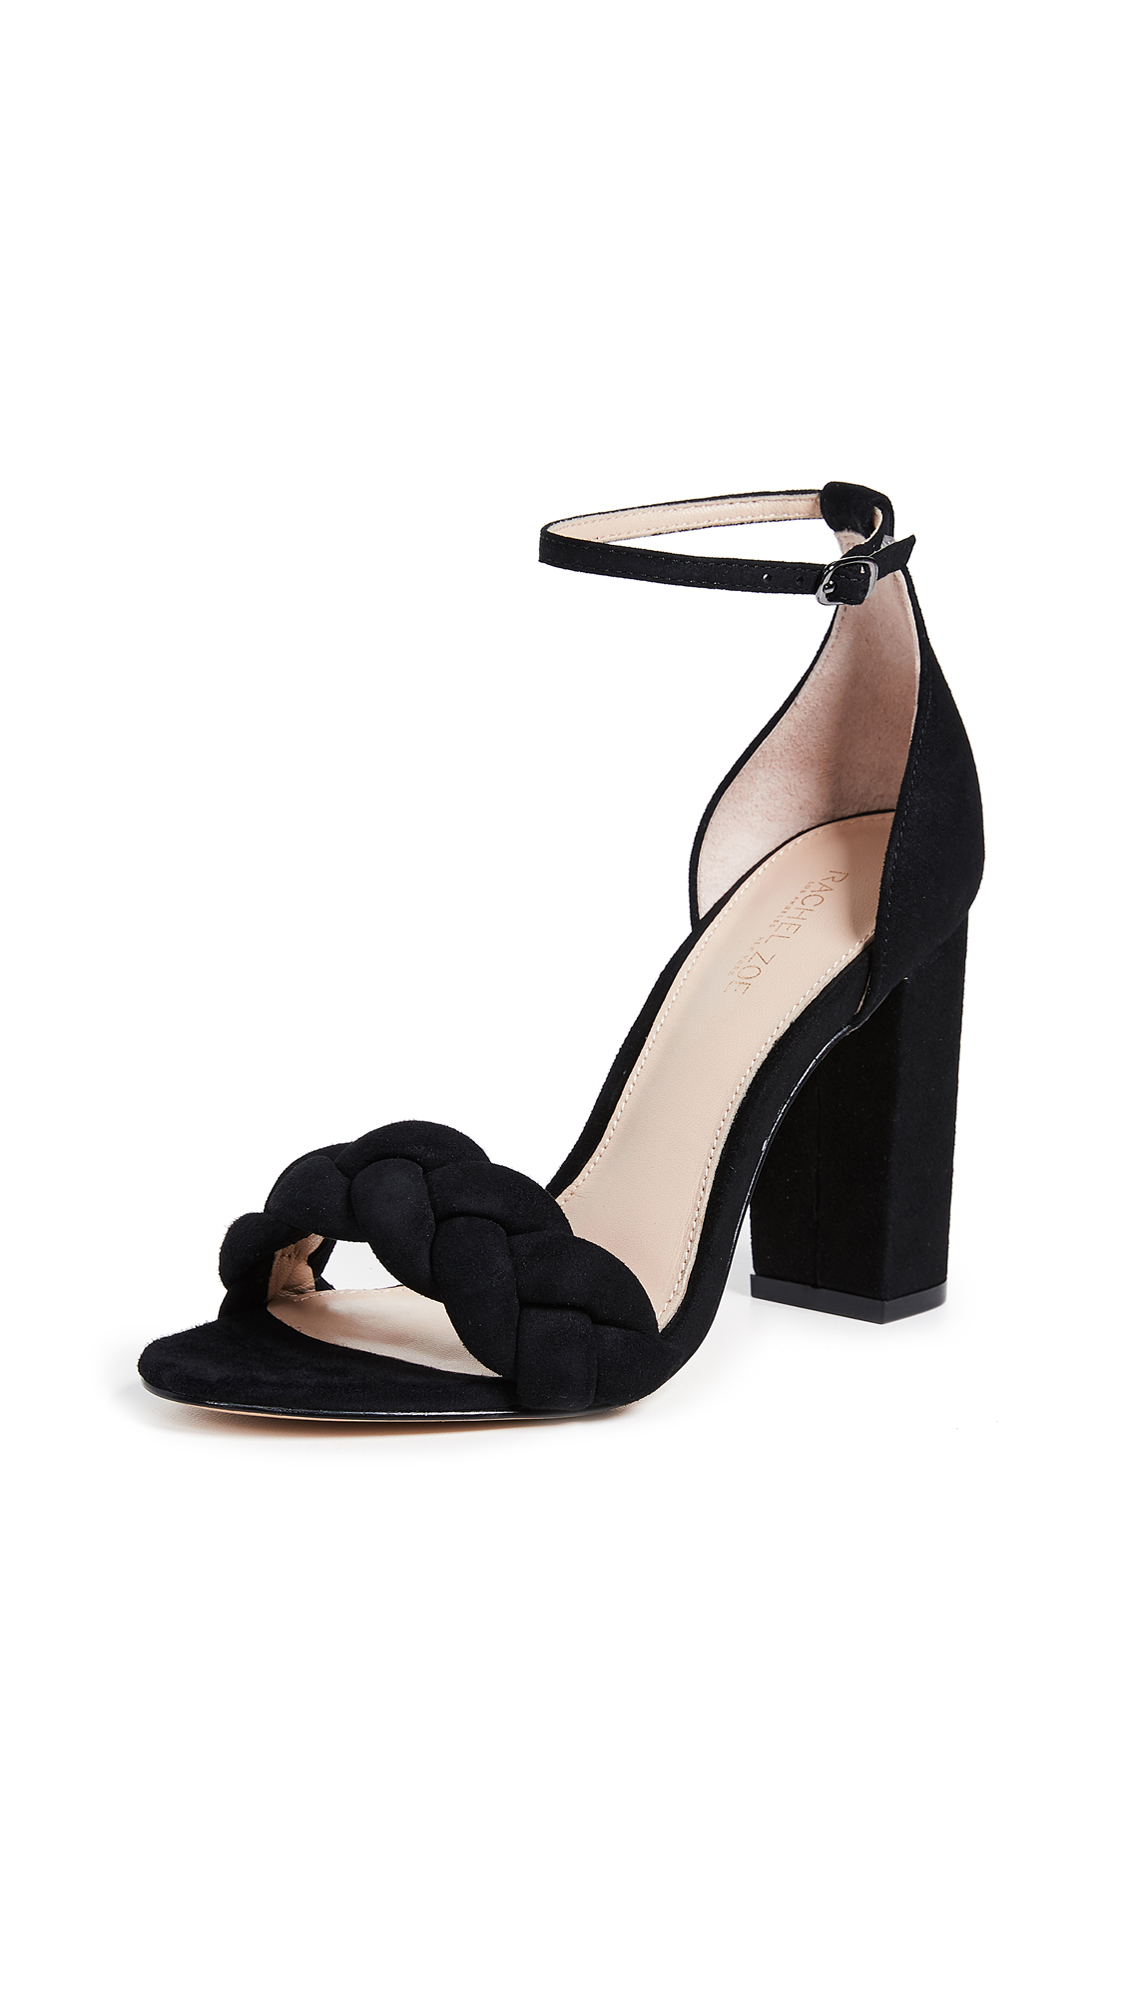 Rachel Zoe Ashton Block Heel City Sandals